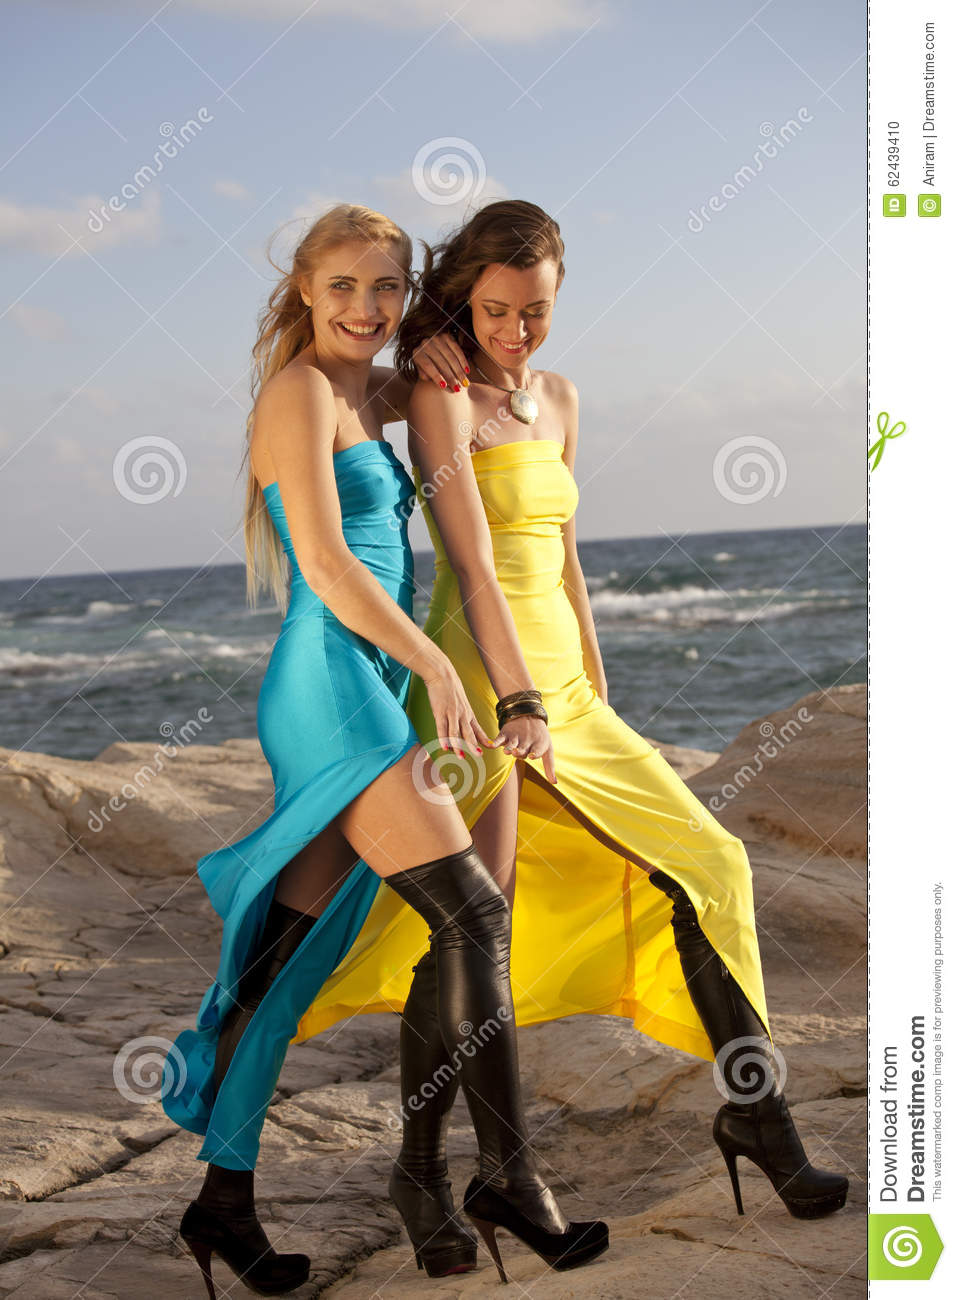 Two women in evening dresses on the beach